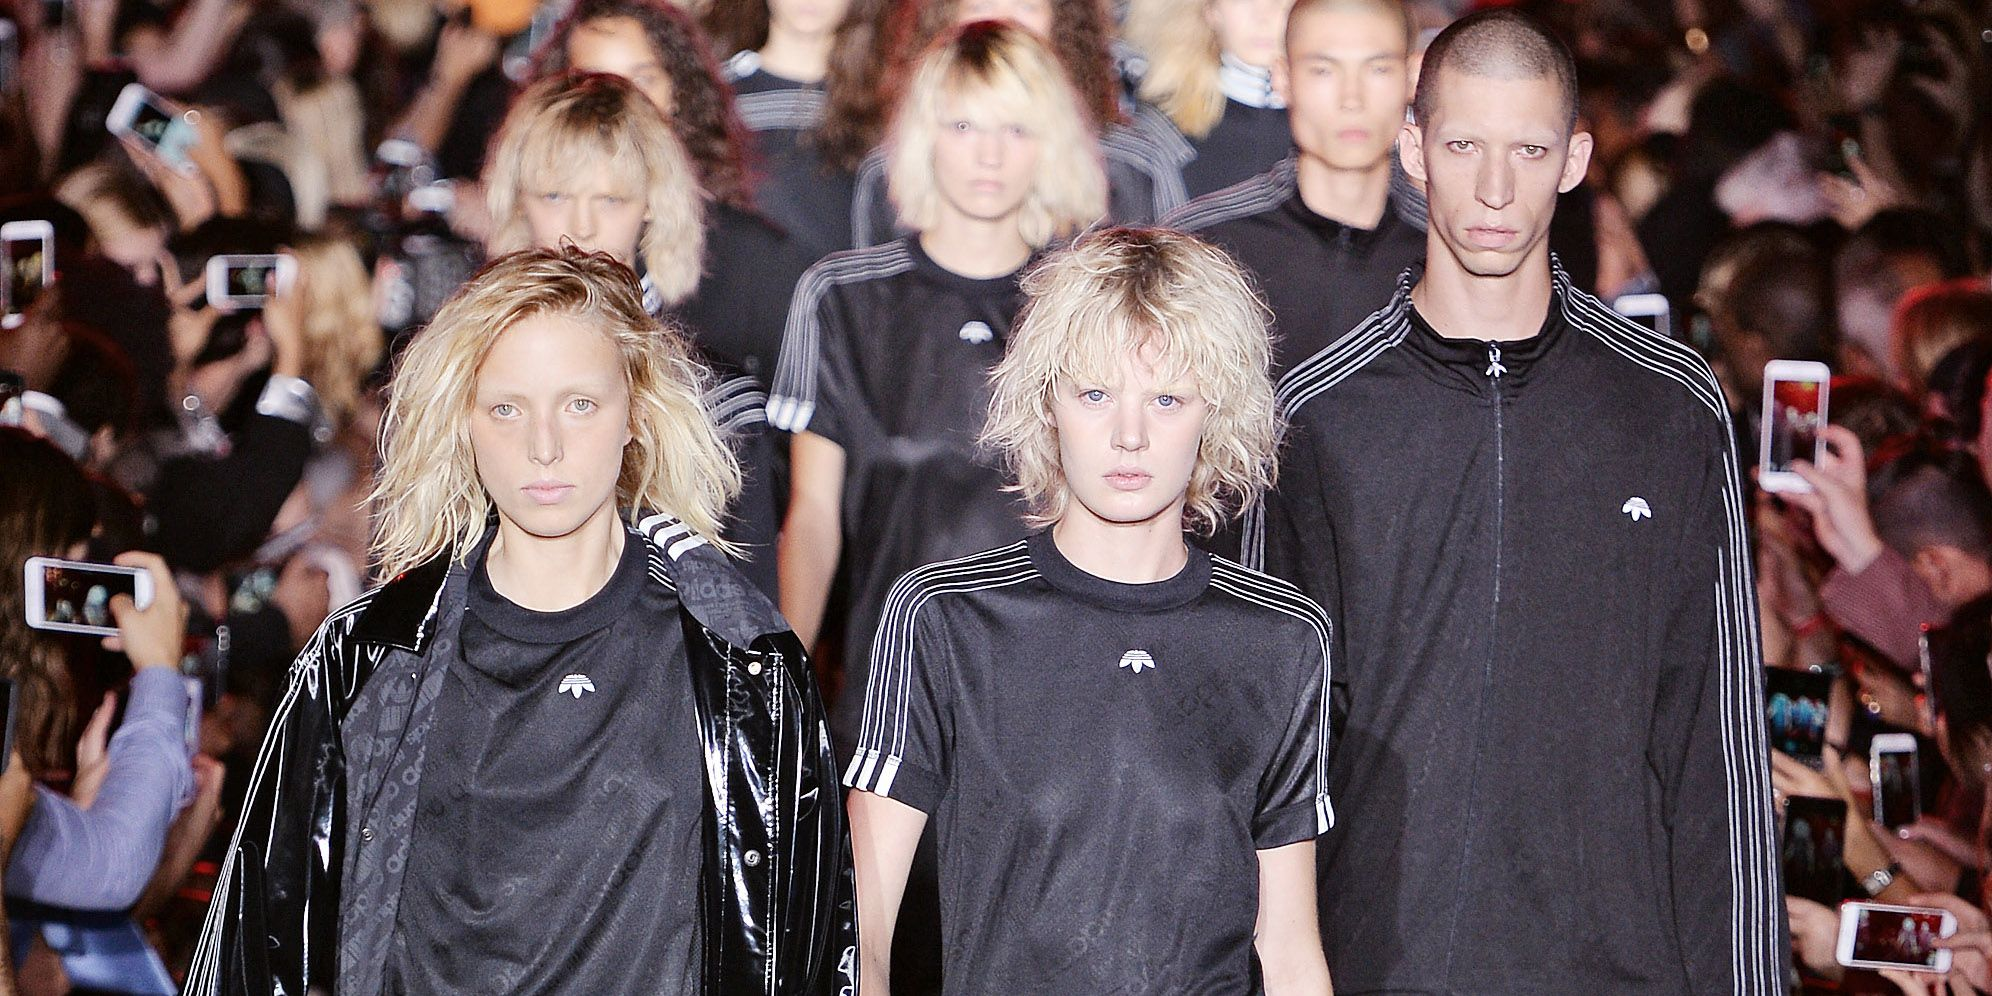 Alexander Wang Is Launching a Second Collection with Adidas